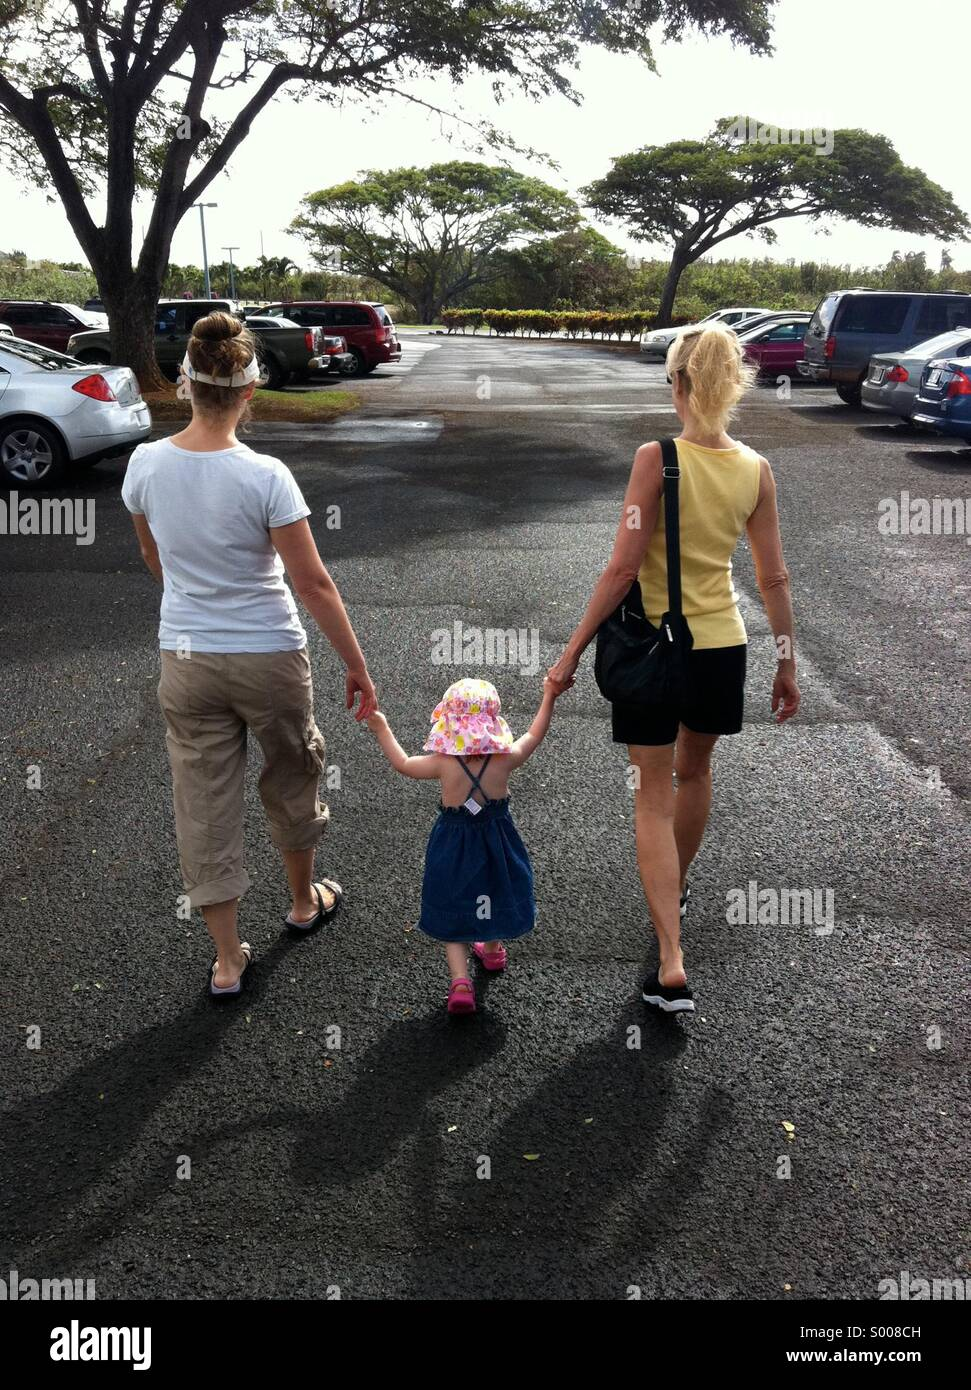 Two women & little girl hold hands in tropical parking lot. - Stock Image